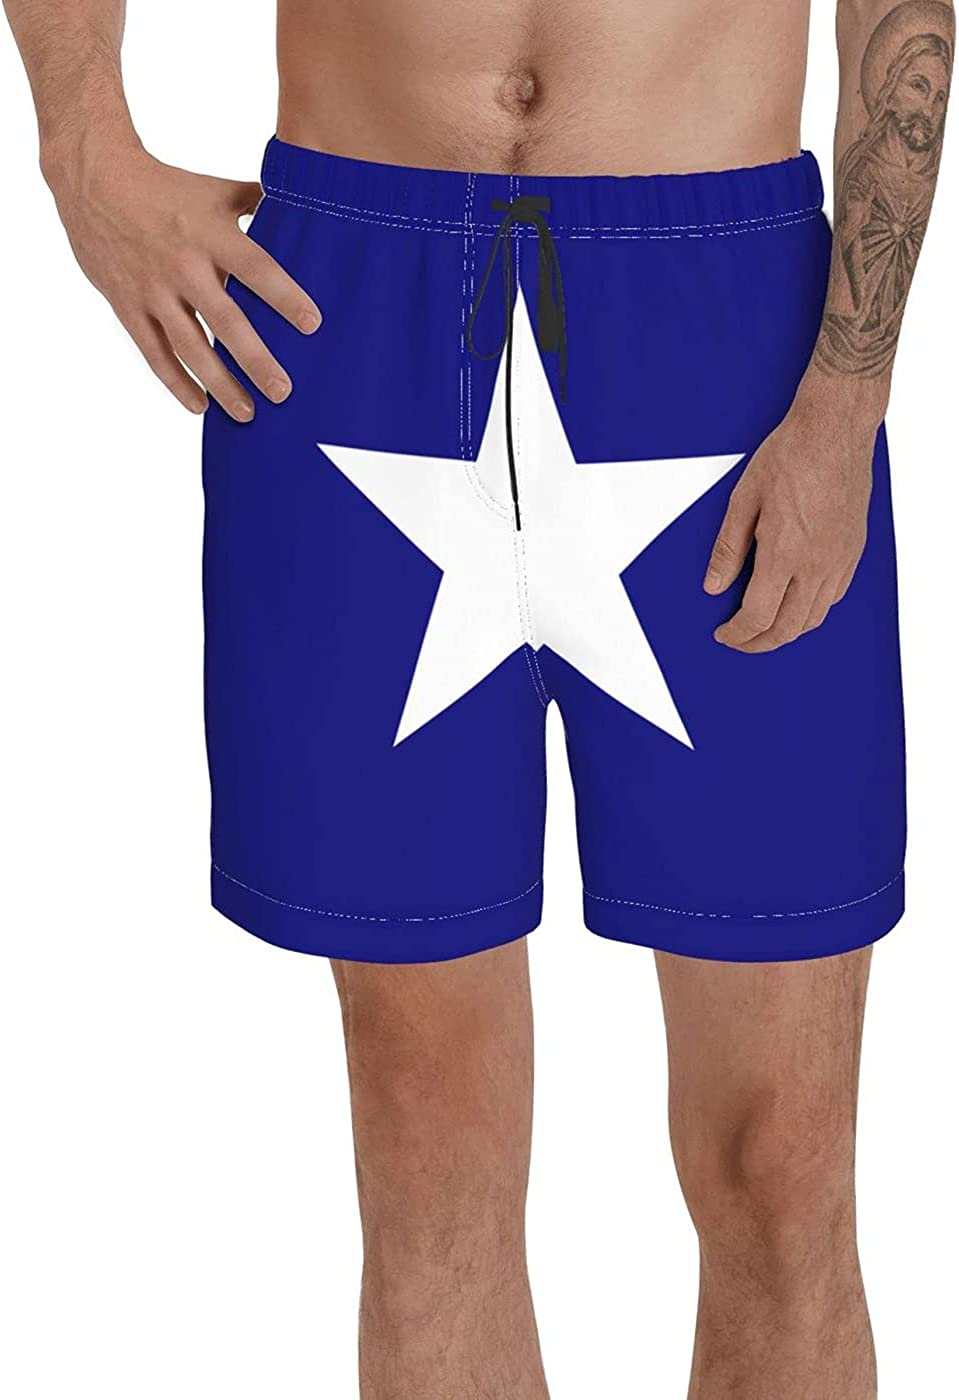 Bonnie Blue Flag Men's 3D Printed Funny Summer Quick Dry Swim Short Board Shorts with